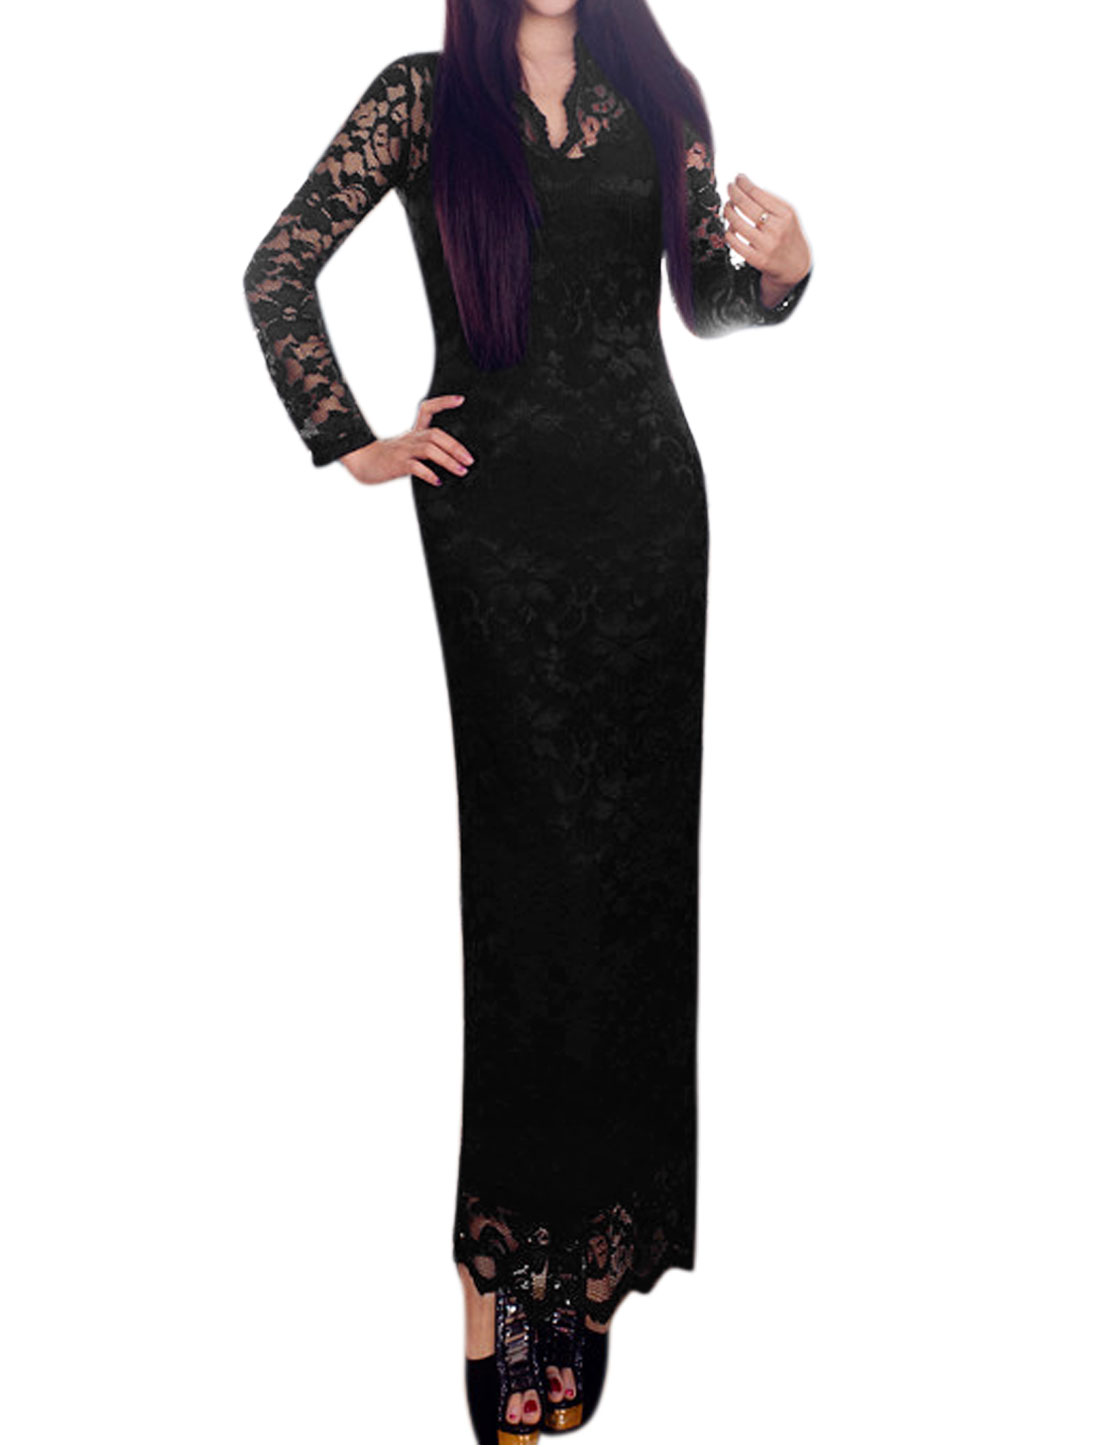 Women Semi Sheer Upper Scalloped V Neck Floral Lace Maxi Dress Black L